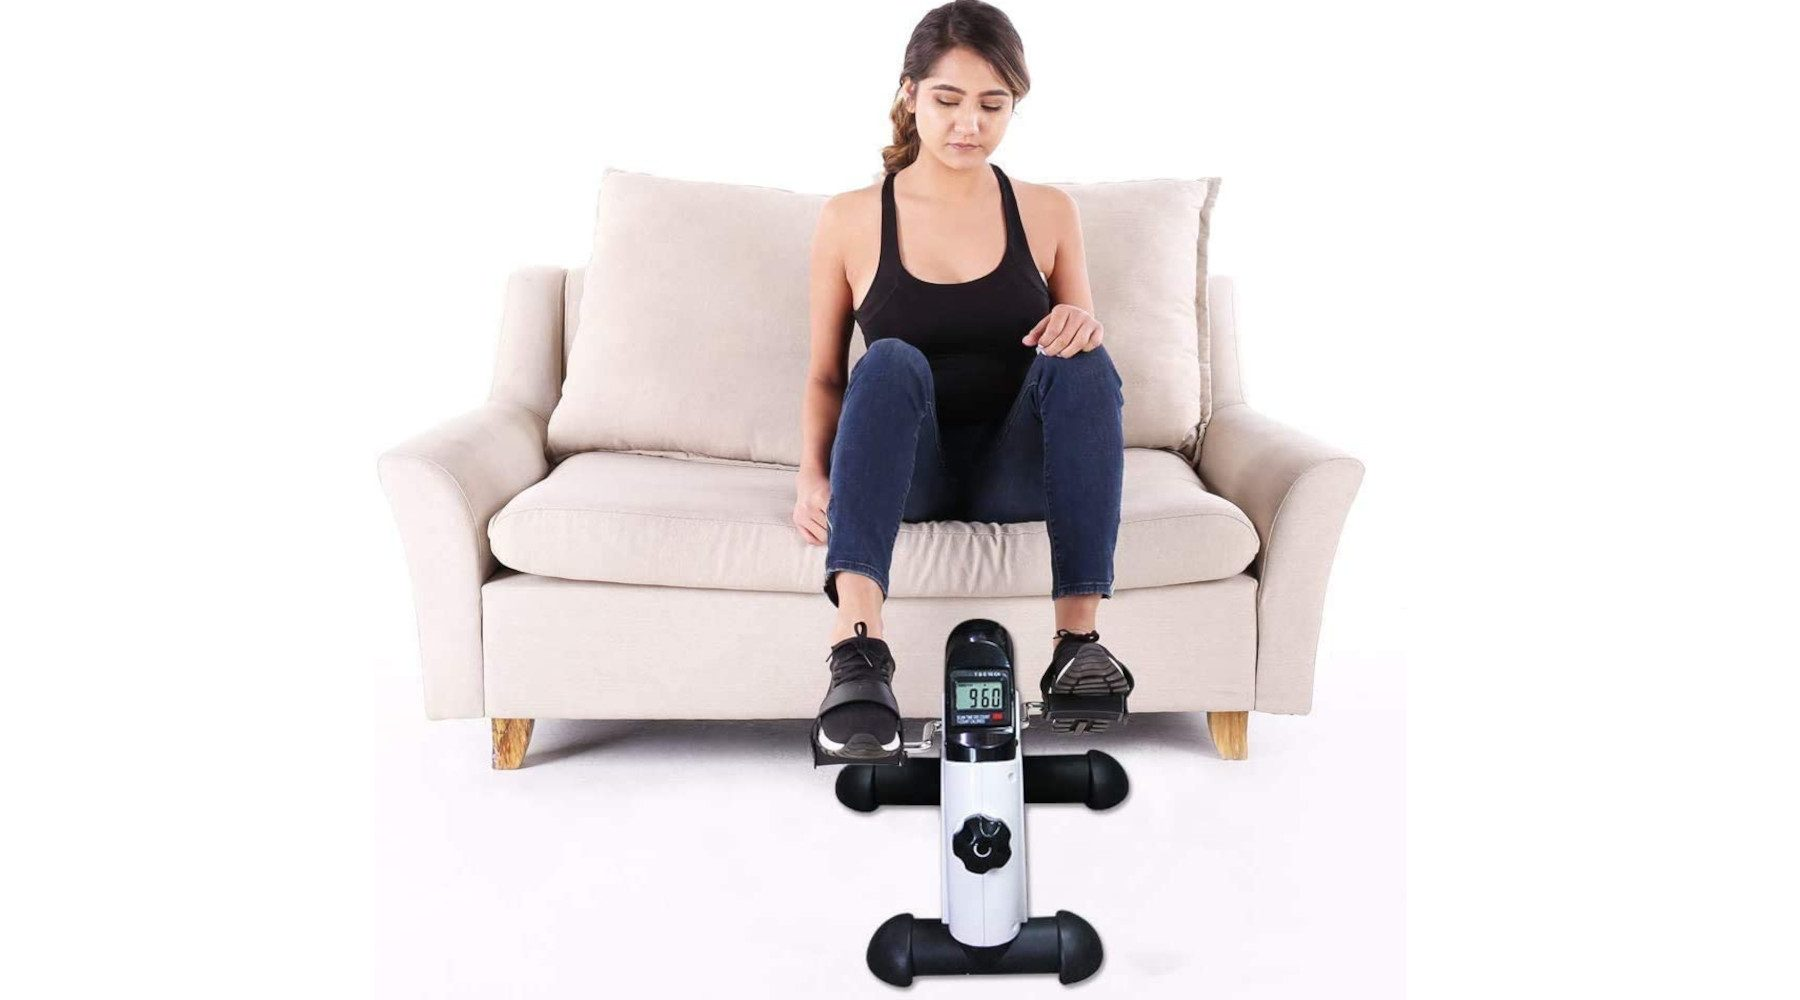 </p><h4>Auselect Exercise Stepper for $59.49 - save $40.50</h4><p>